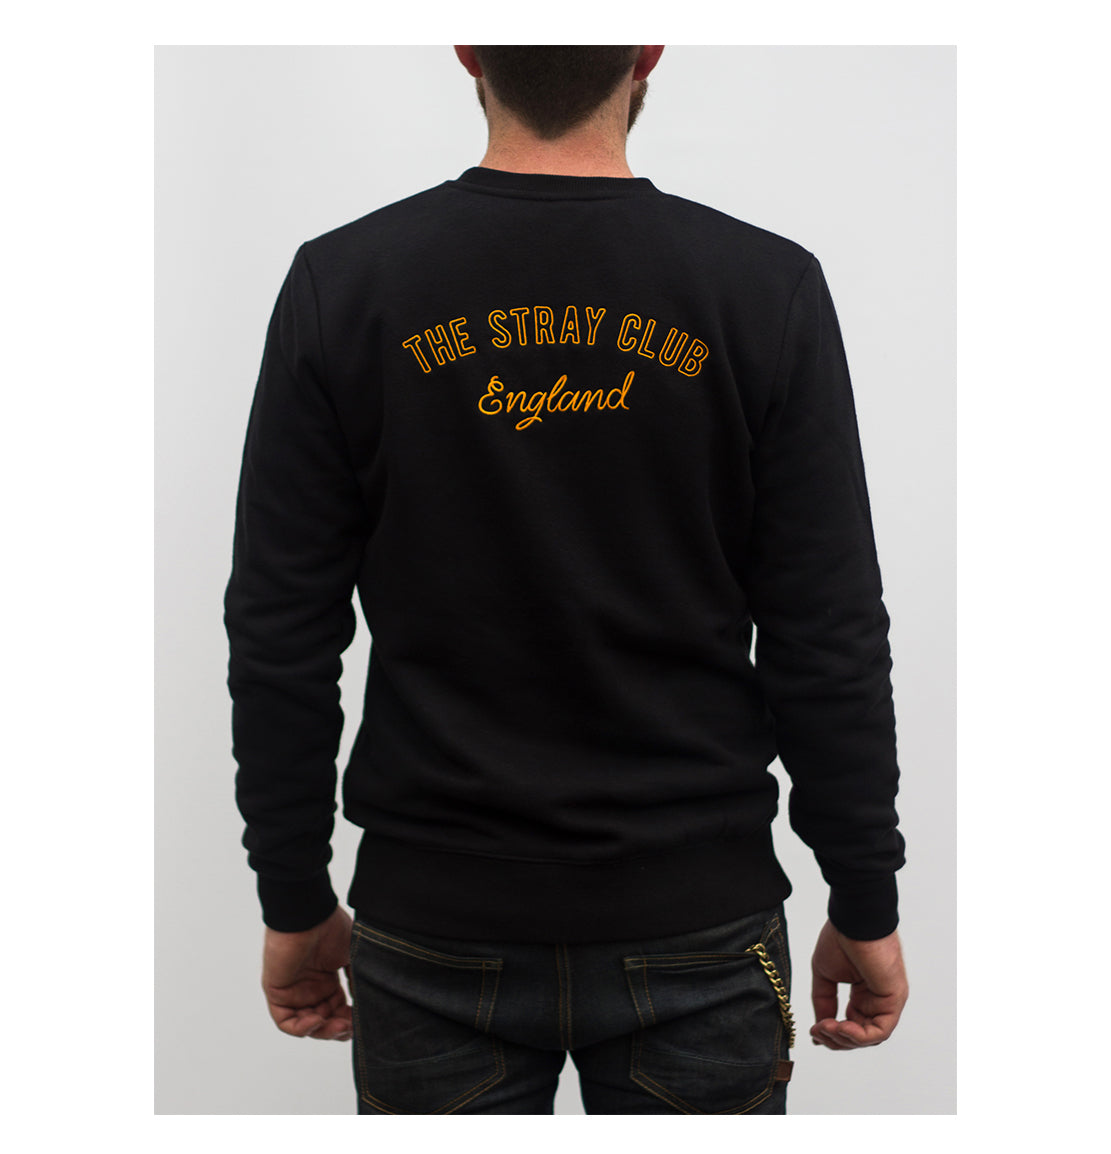 The stray club rogue sweat shirt